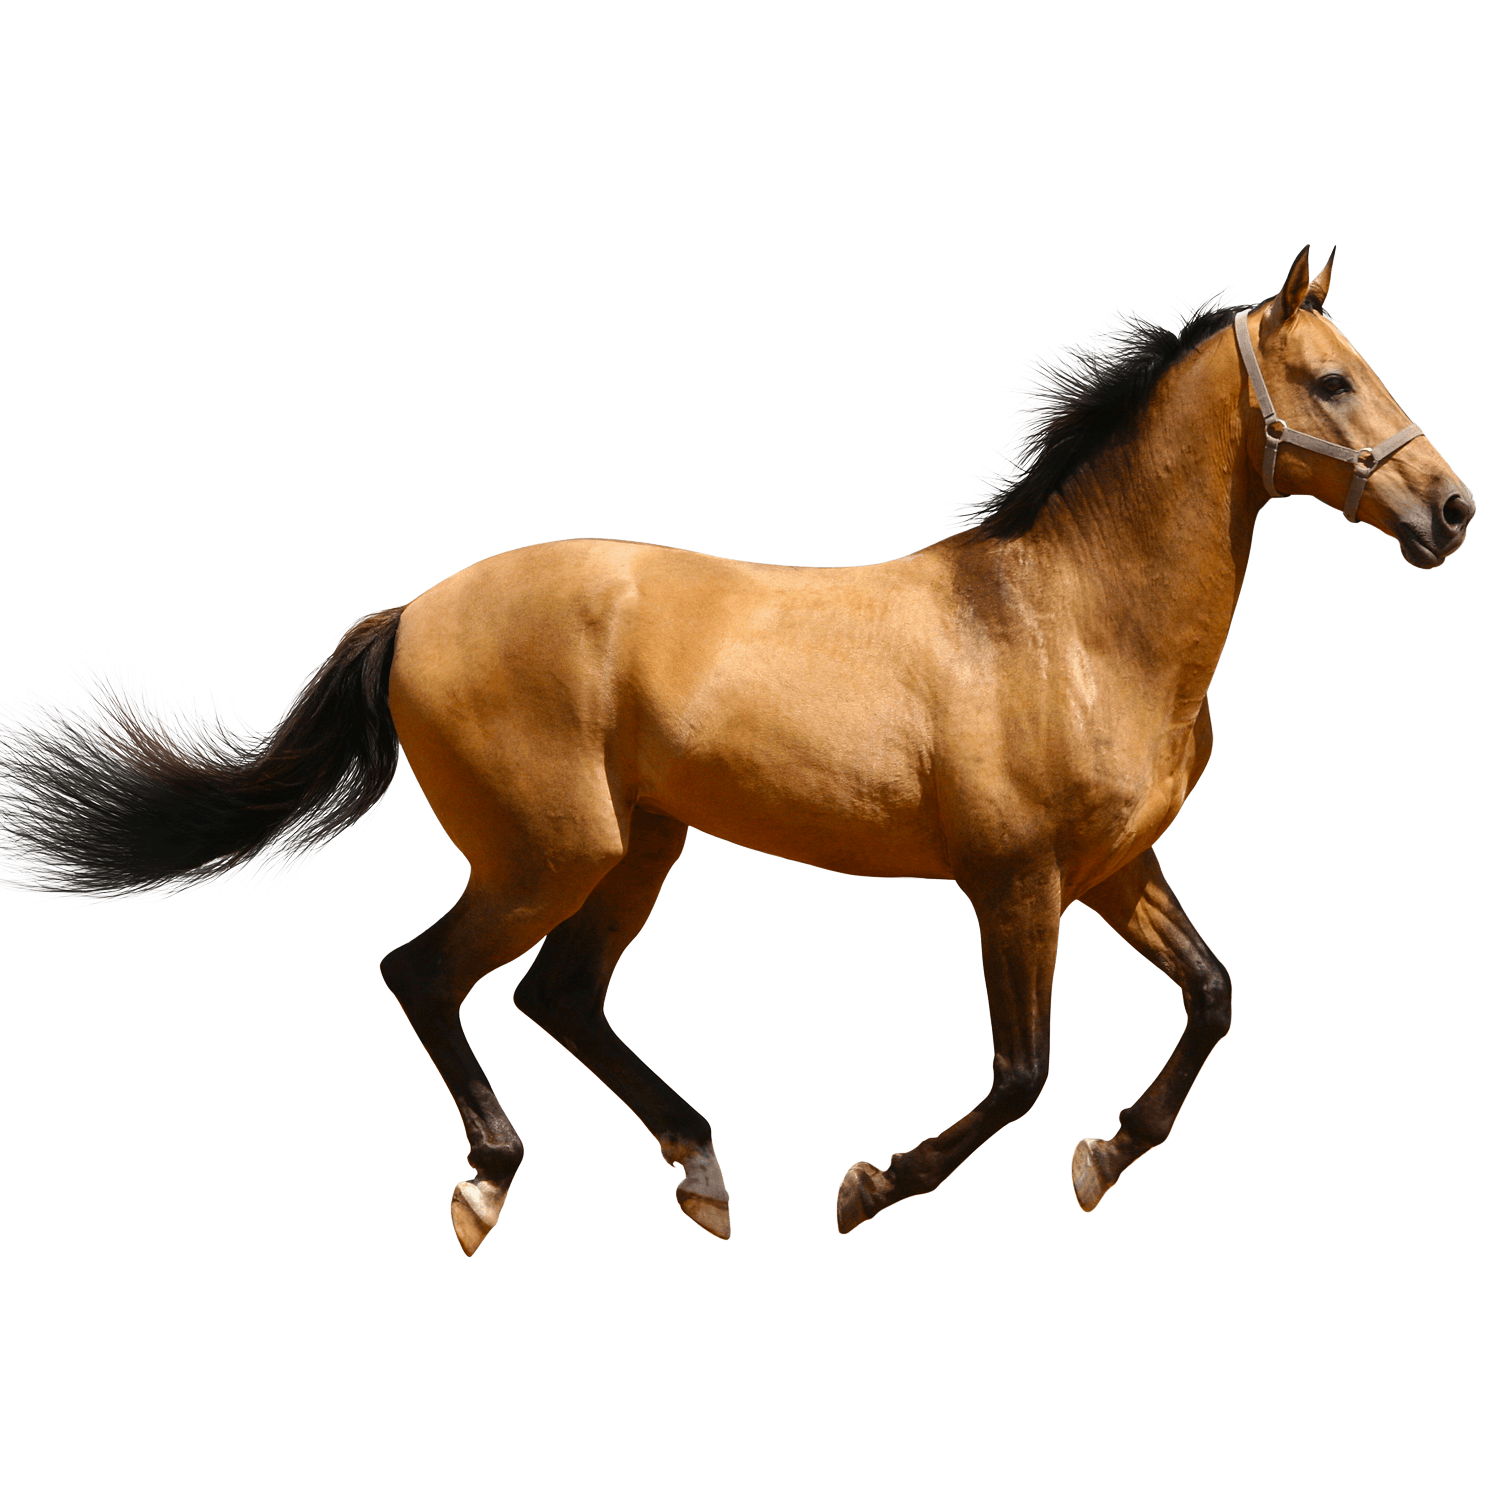 mustang horse side view. horse running brown sideview mustang side view w